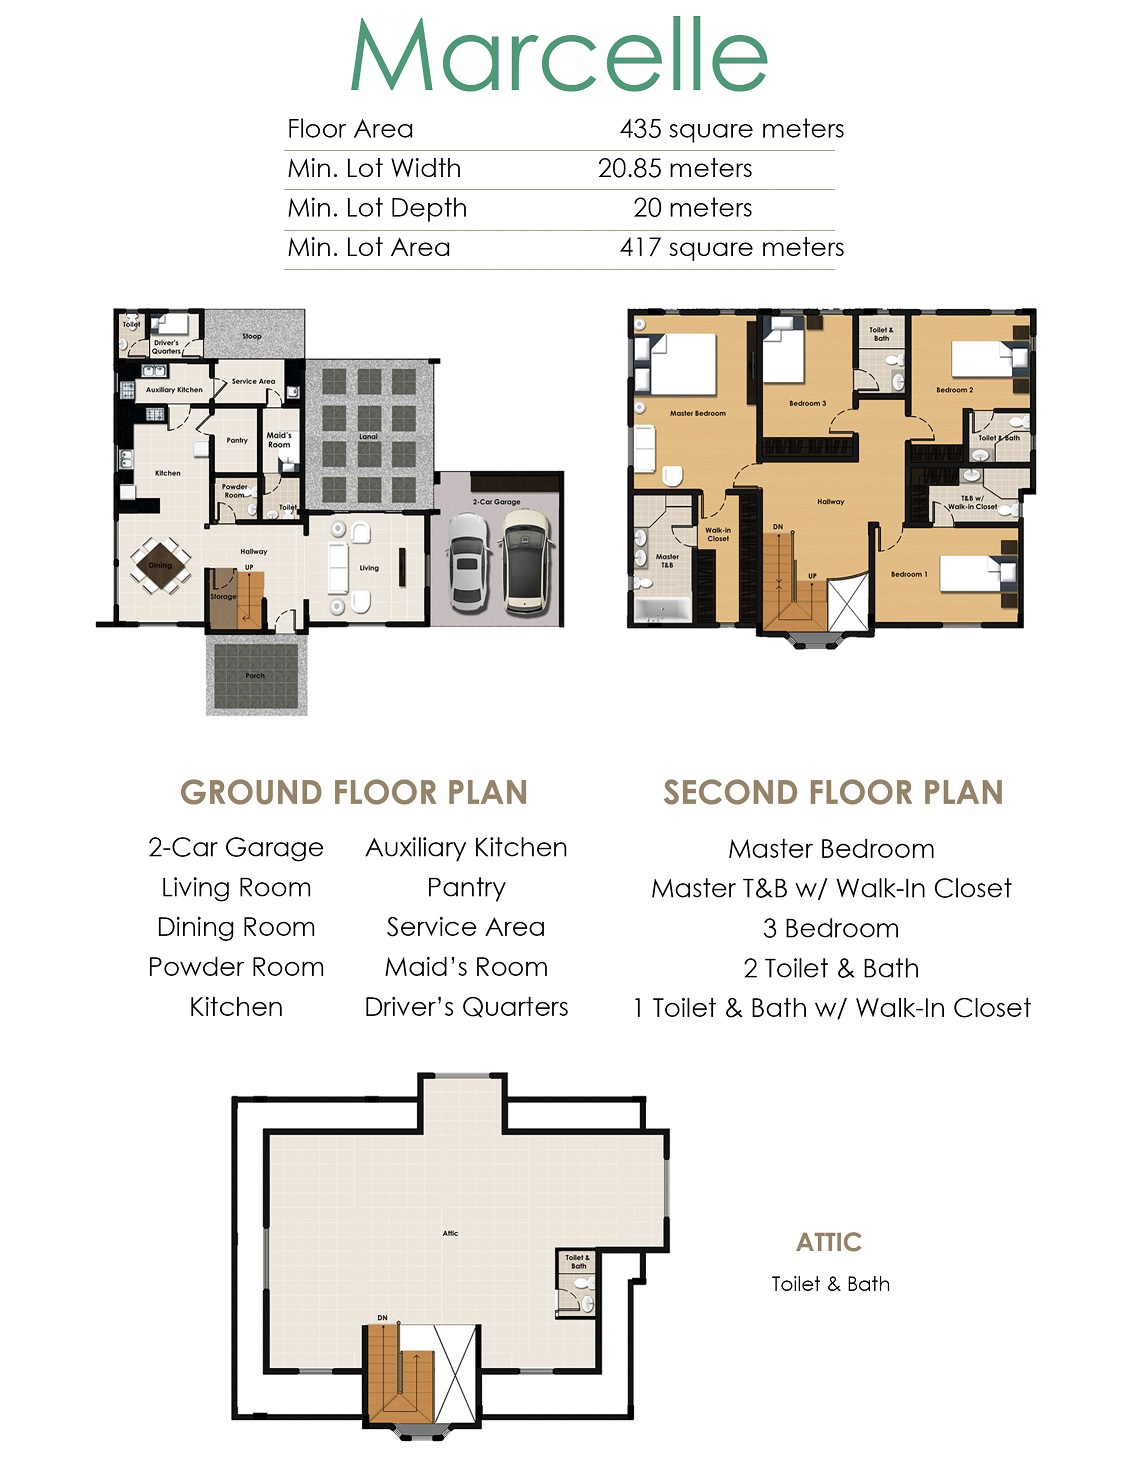 Floor Plan of Marcelle Ready Home - La Posada | House and Lot for Sale Sucat Muntinlupa